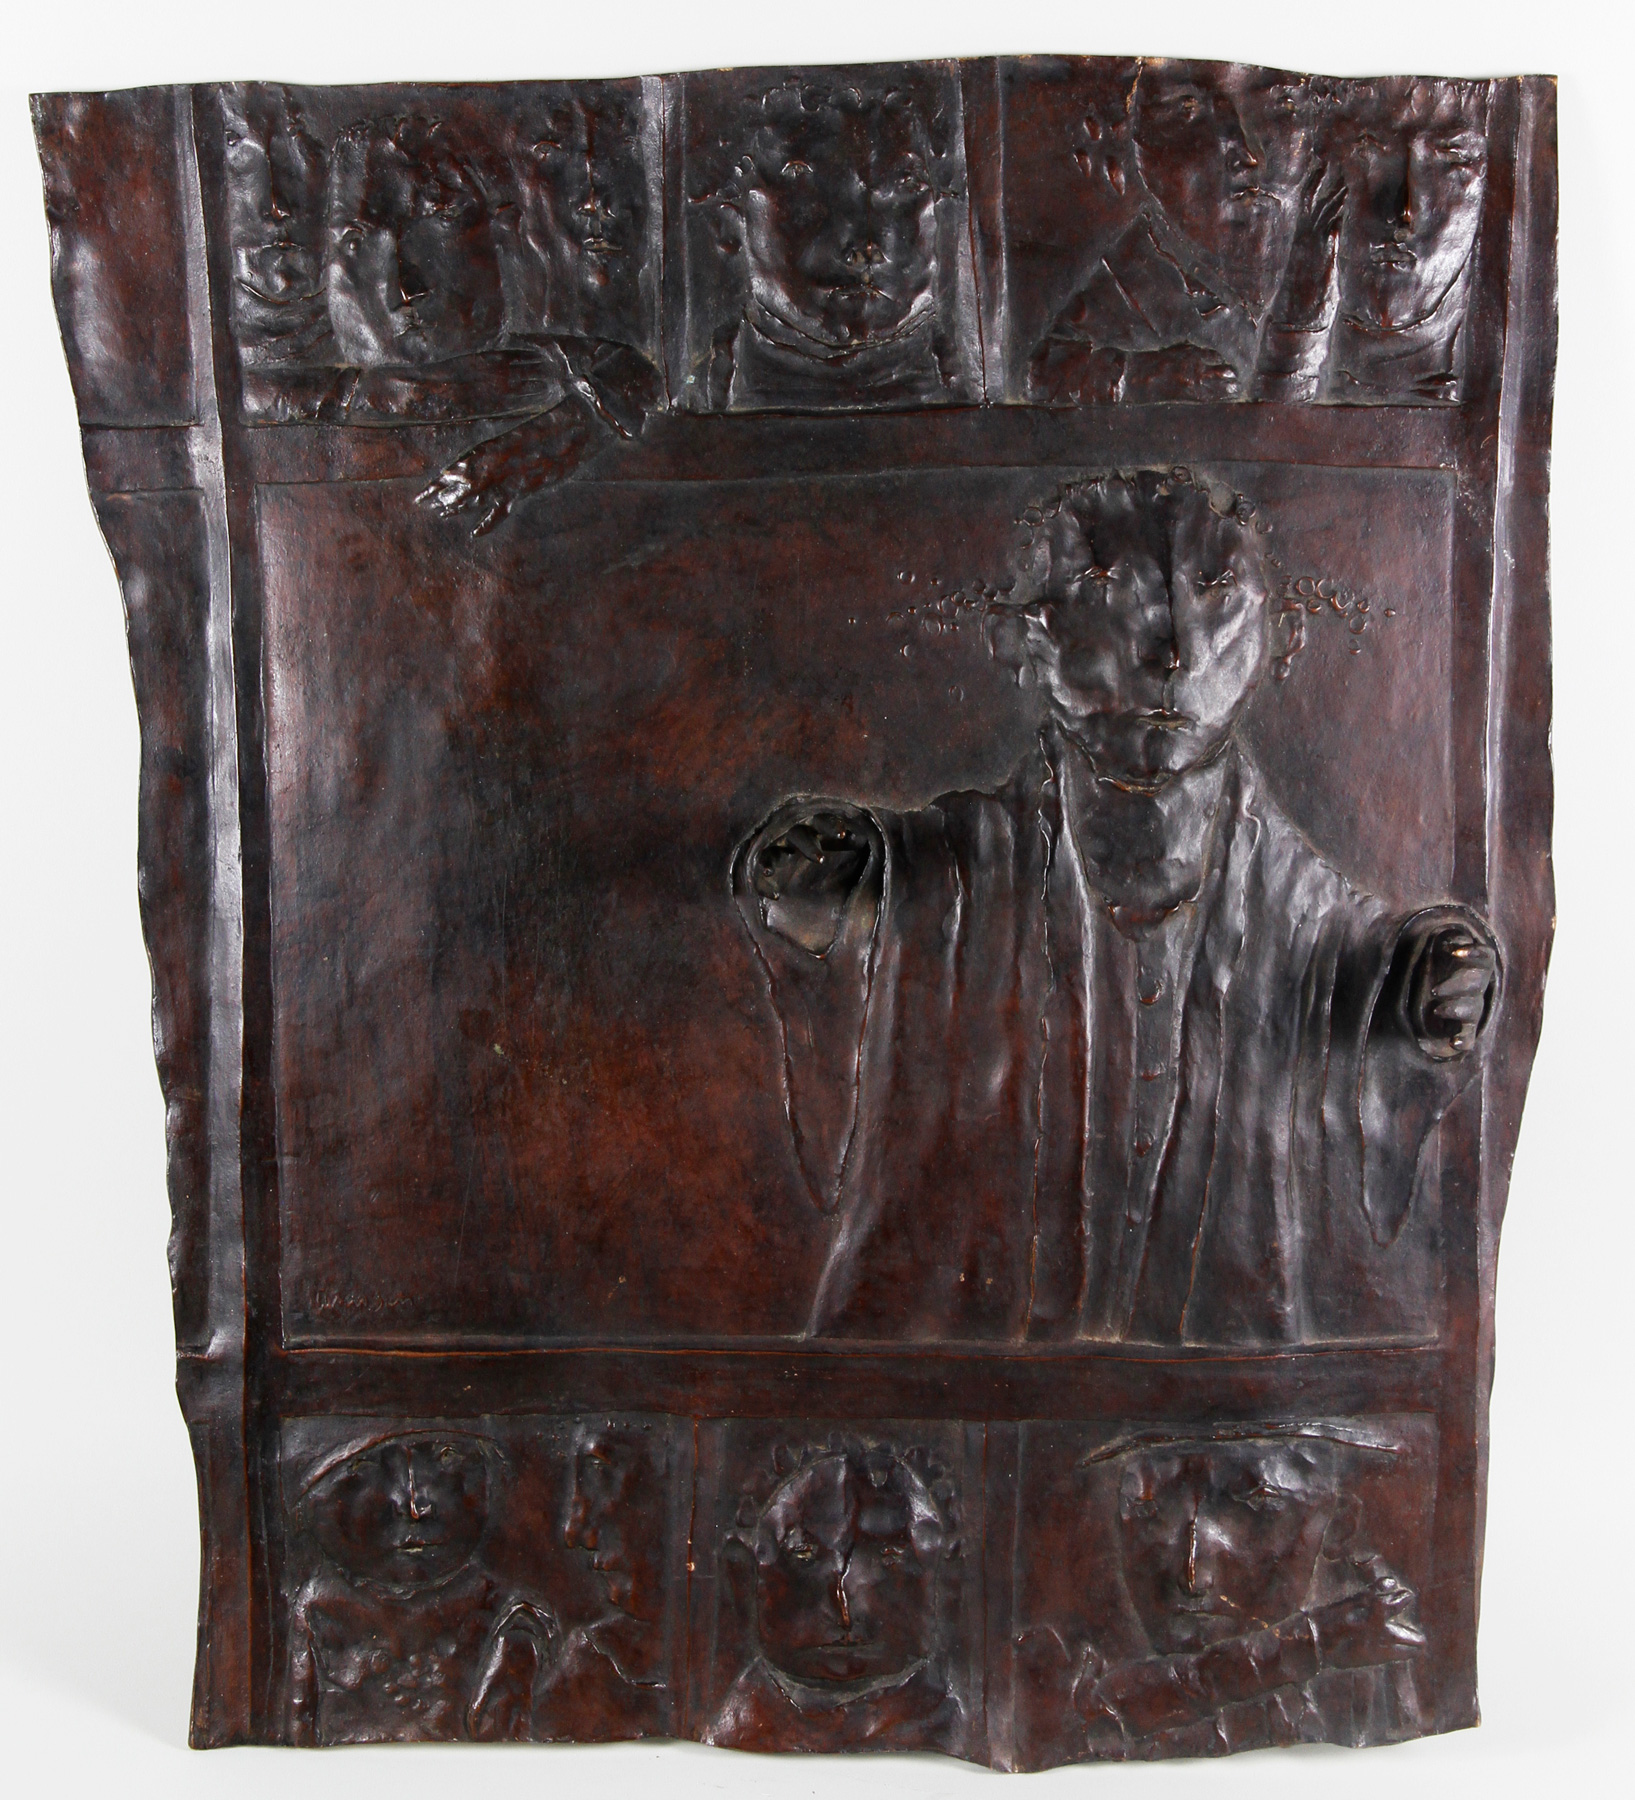 david aronson lithuanian b1923 bronze plaque - Aronson Furniture